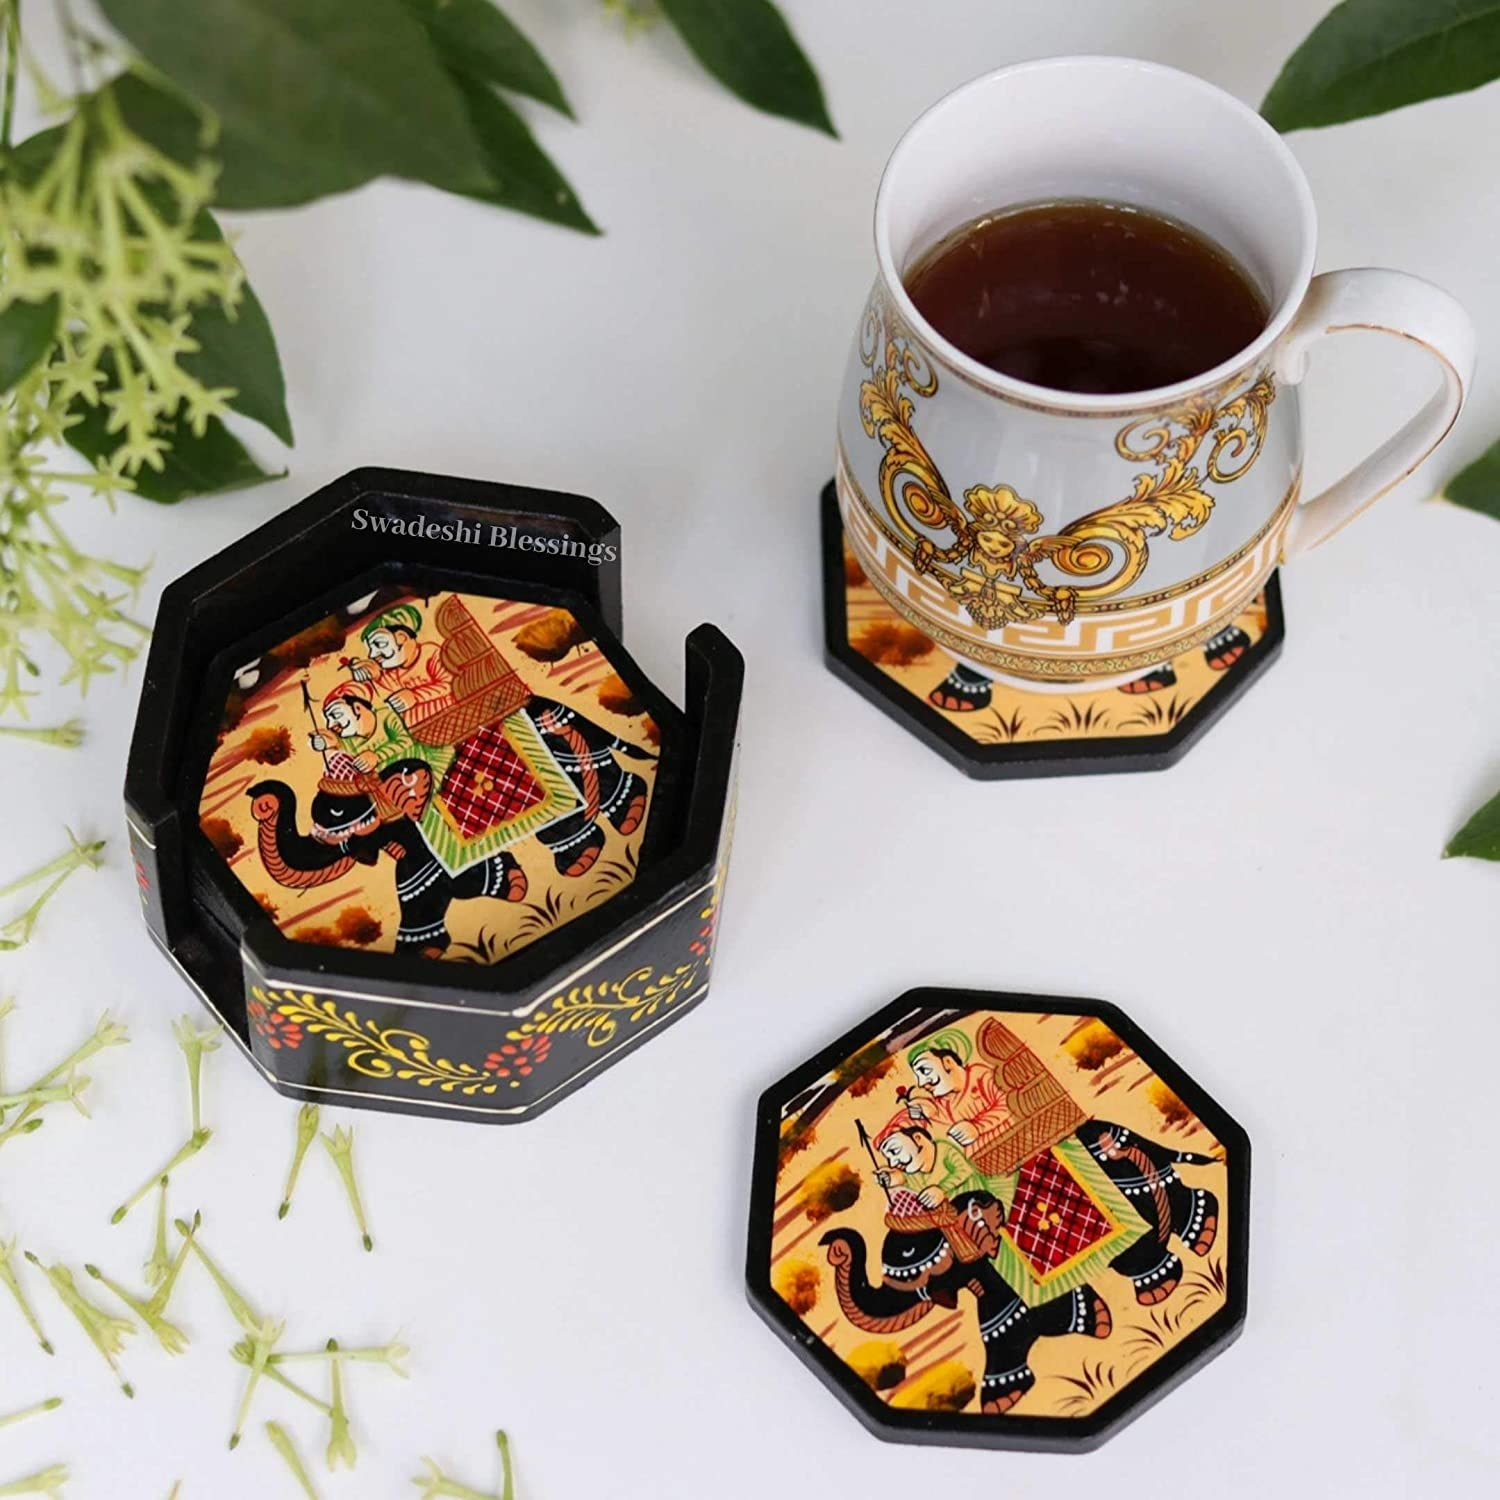 A set of coasters with traditional paintings of royalty on them